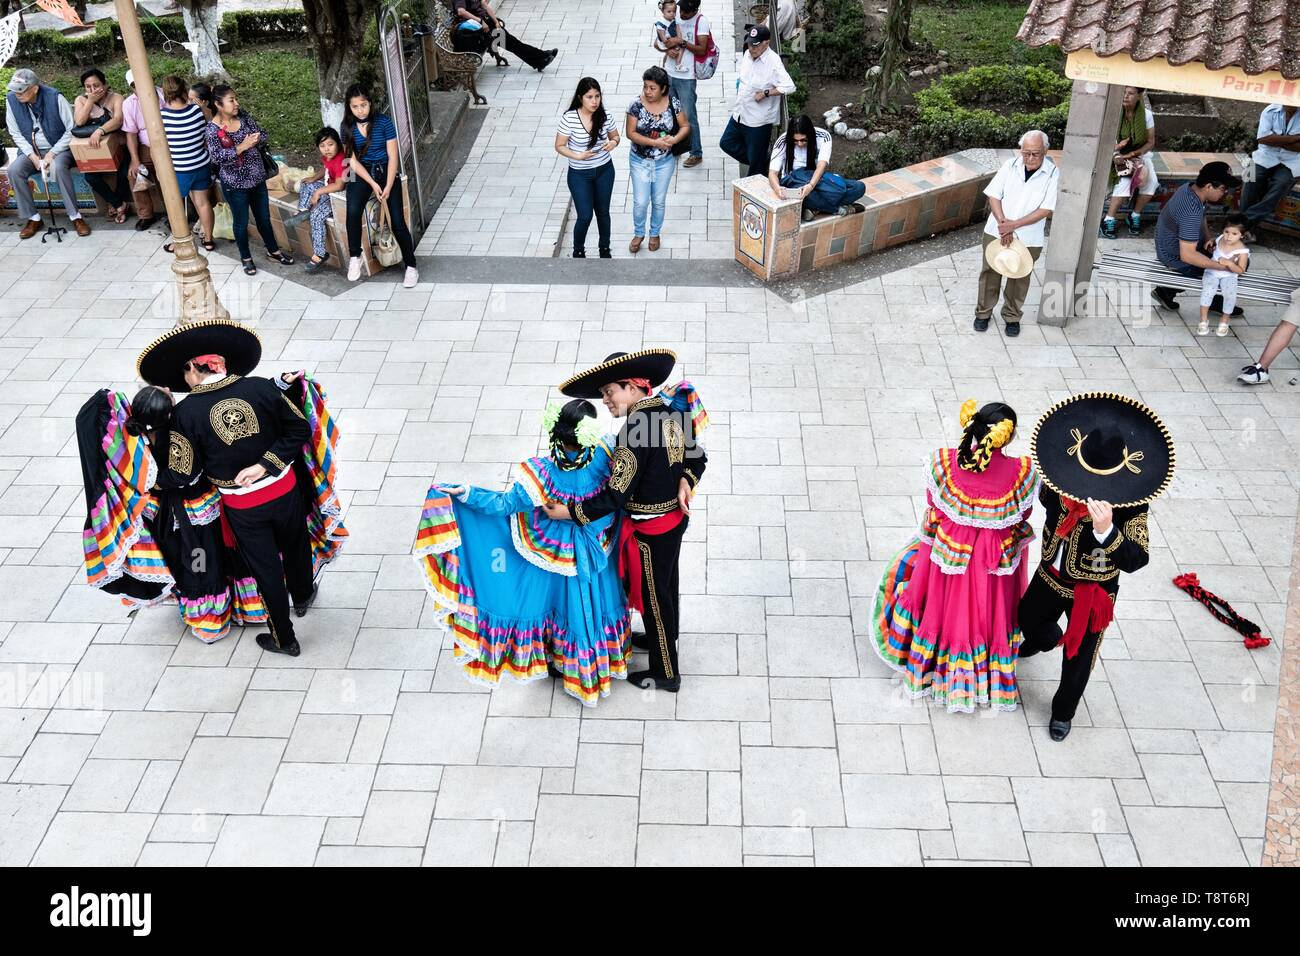 Costumed Mexican dancers perform the traditional Jarabe Tapatío folk dance in the Plaza Central Israel Tellez Park in Papantla, Veracruz, Mexico. - Stock Image